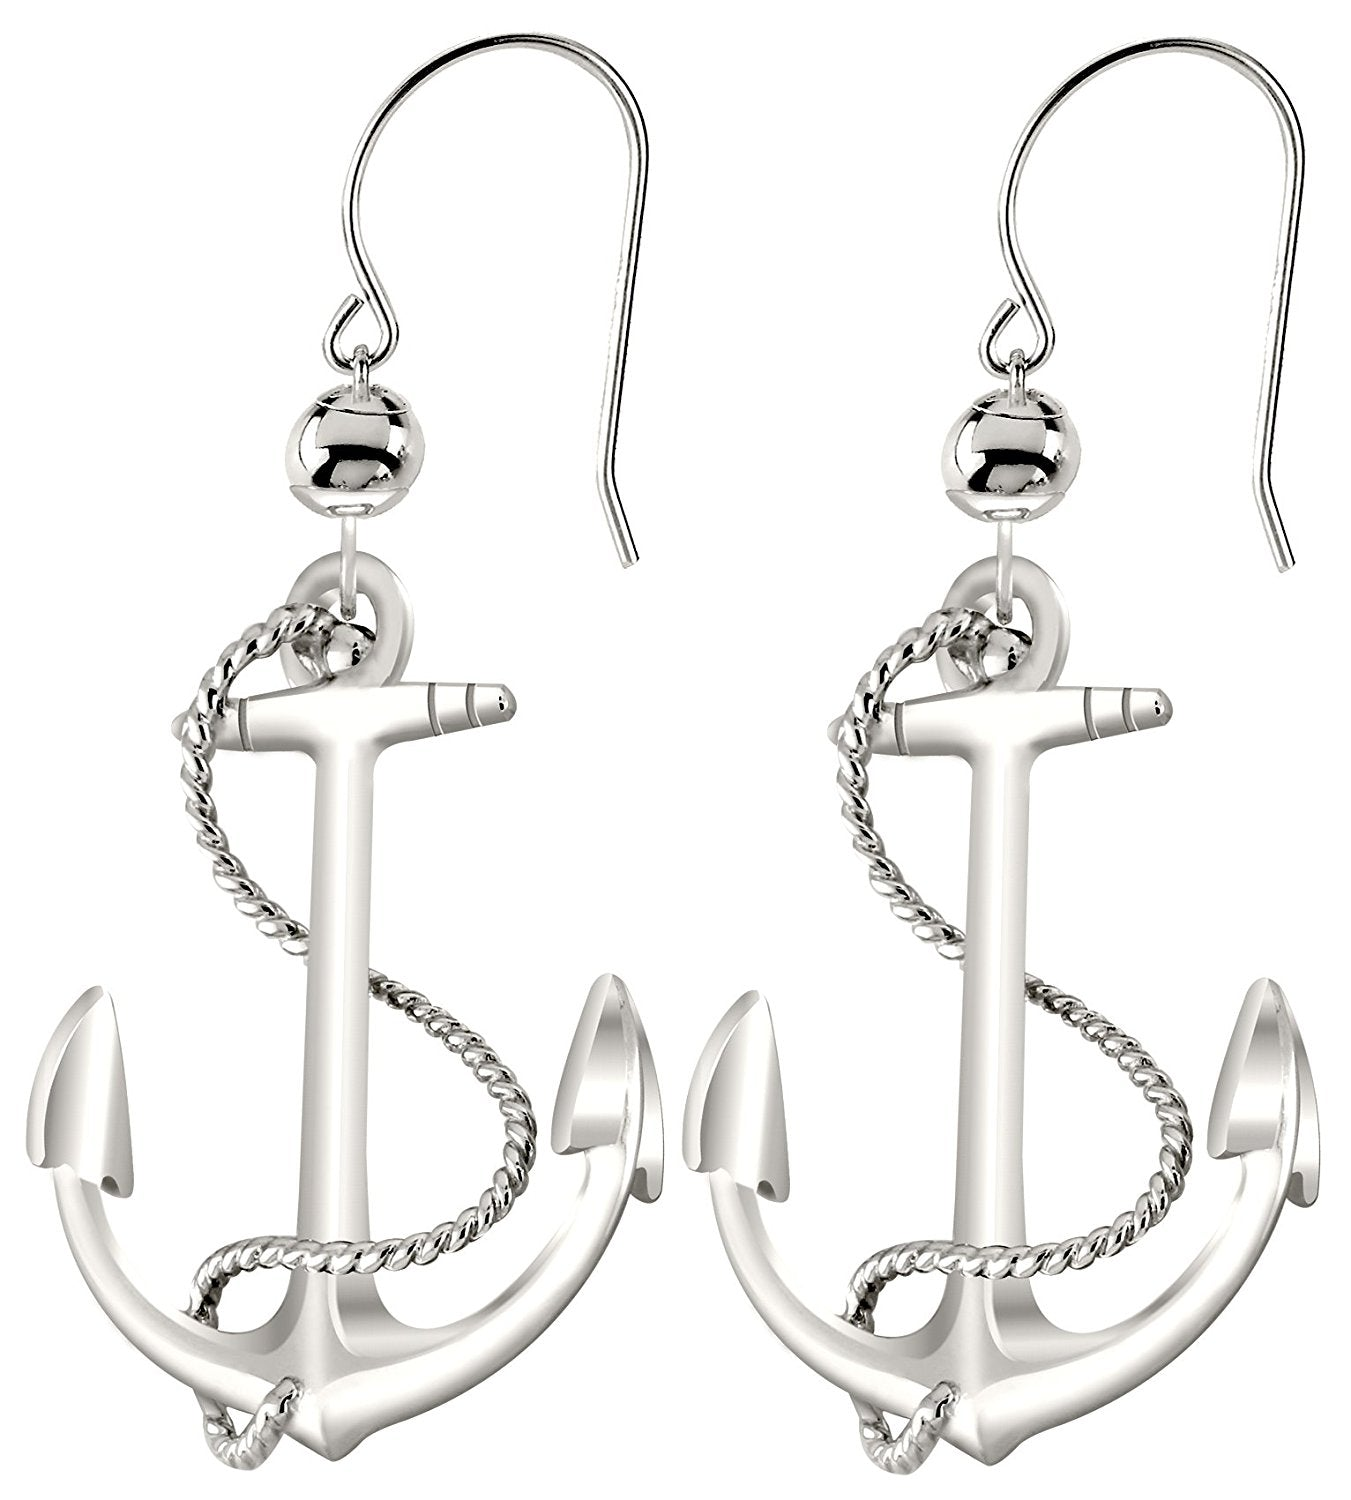 Dangle Earrings - Anchor Earrings In Sterling Silver